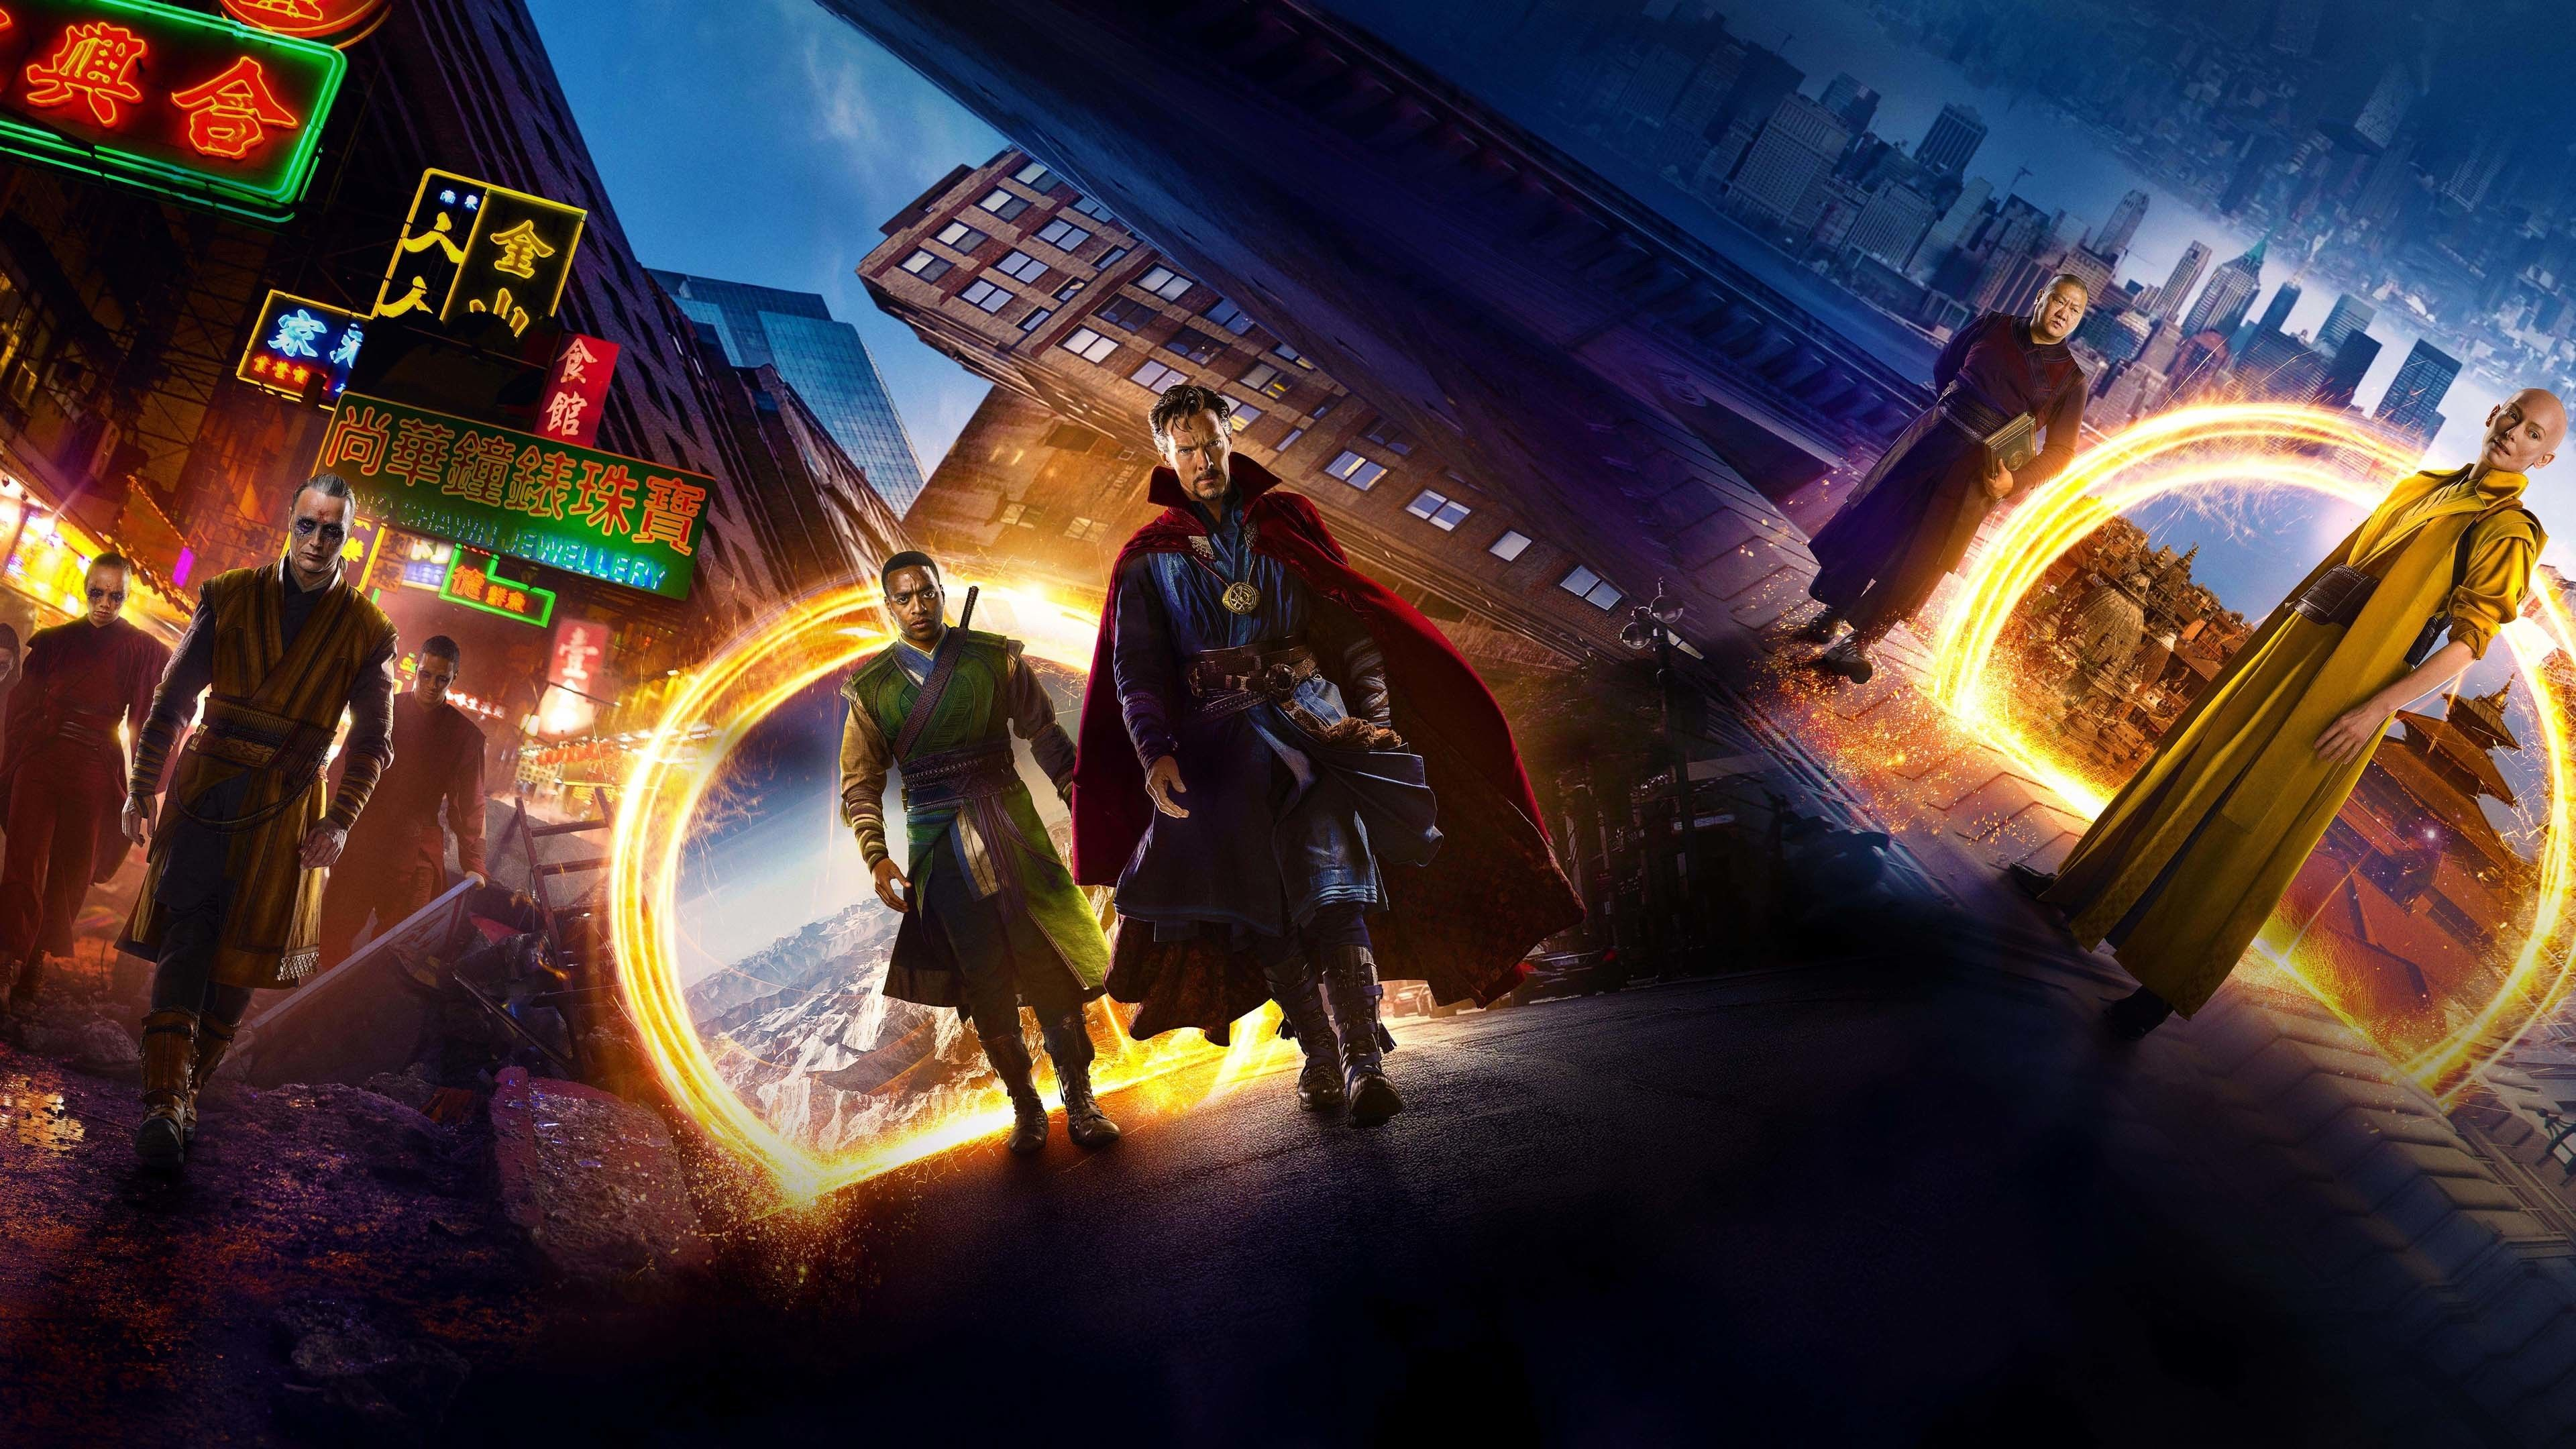 Doctor Strange - itvmovie |Download HD Movies, torrent in HD, Watch Free Online Movies Stream, New full length movie download